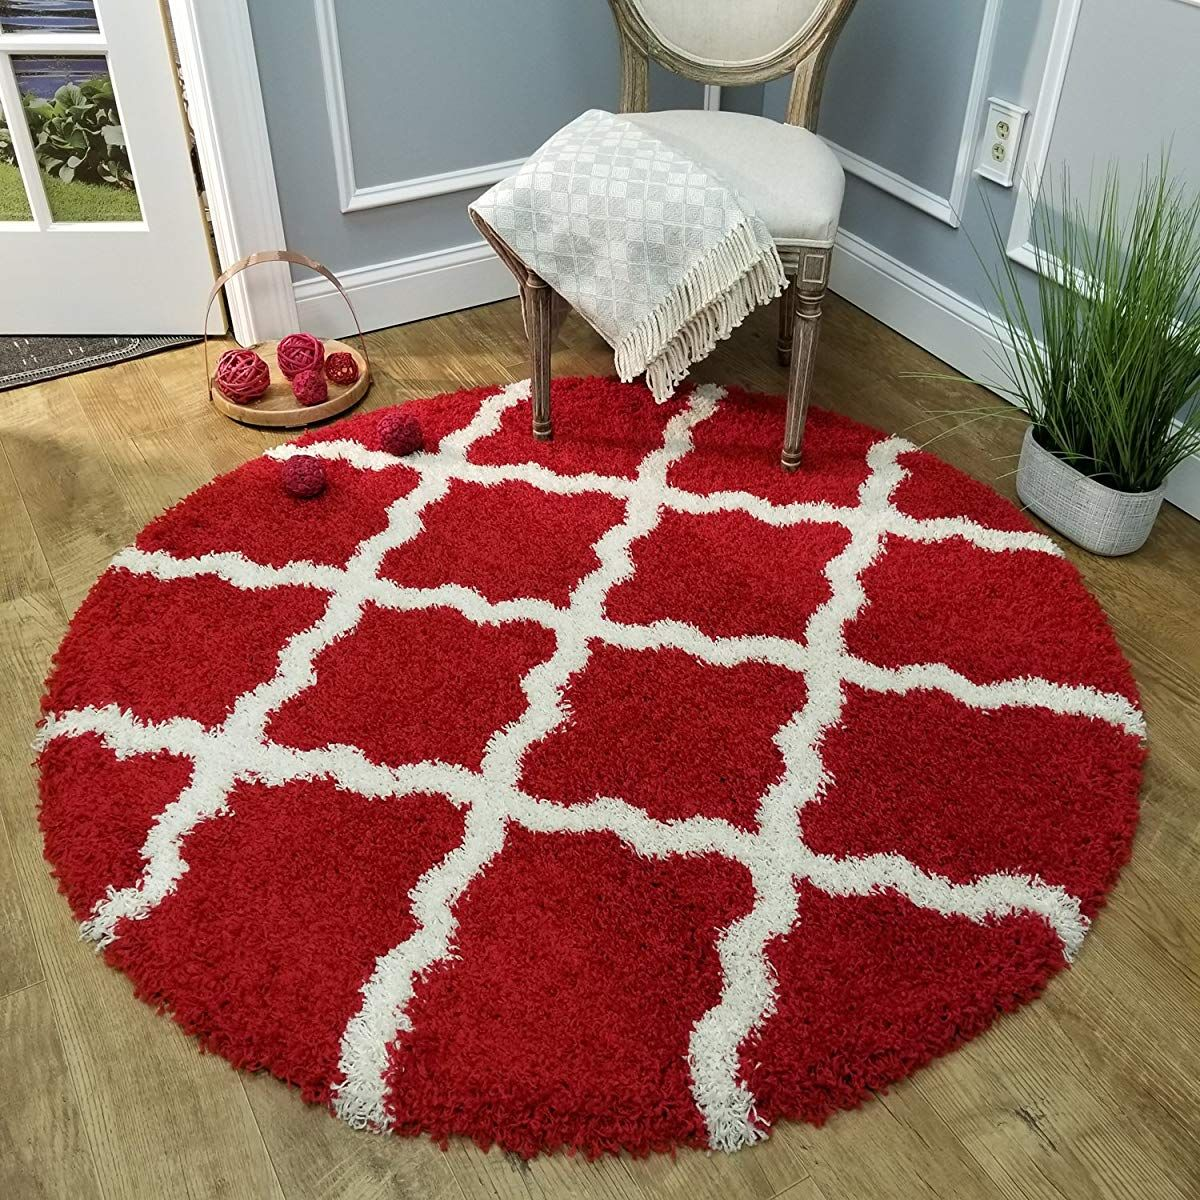 Trellis Red 5 Ft Round Shag Area Rug Area Room Rugs Area Rugs Shag Area Rug